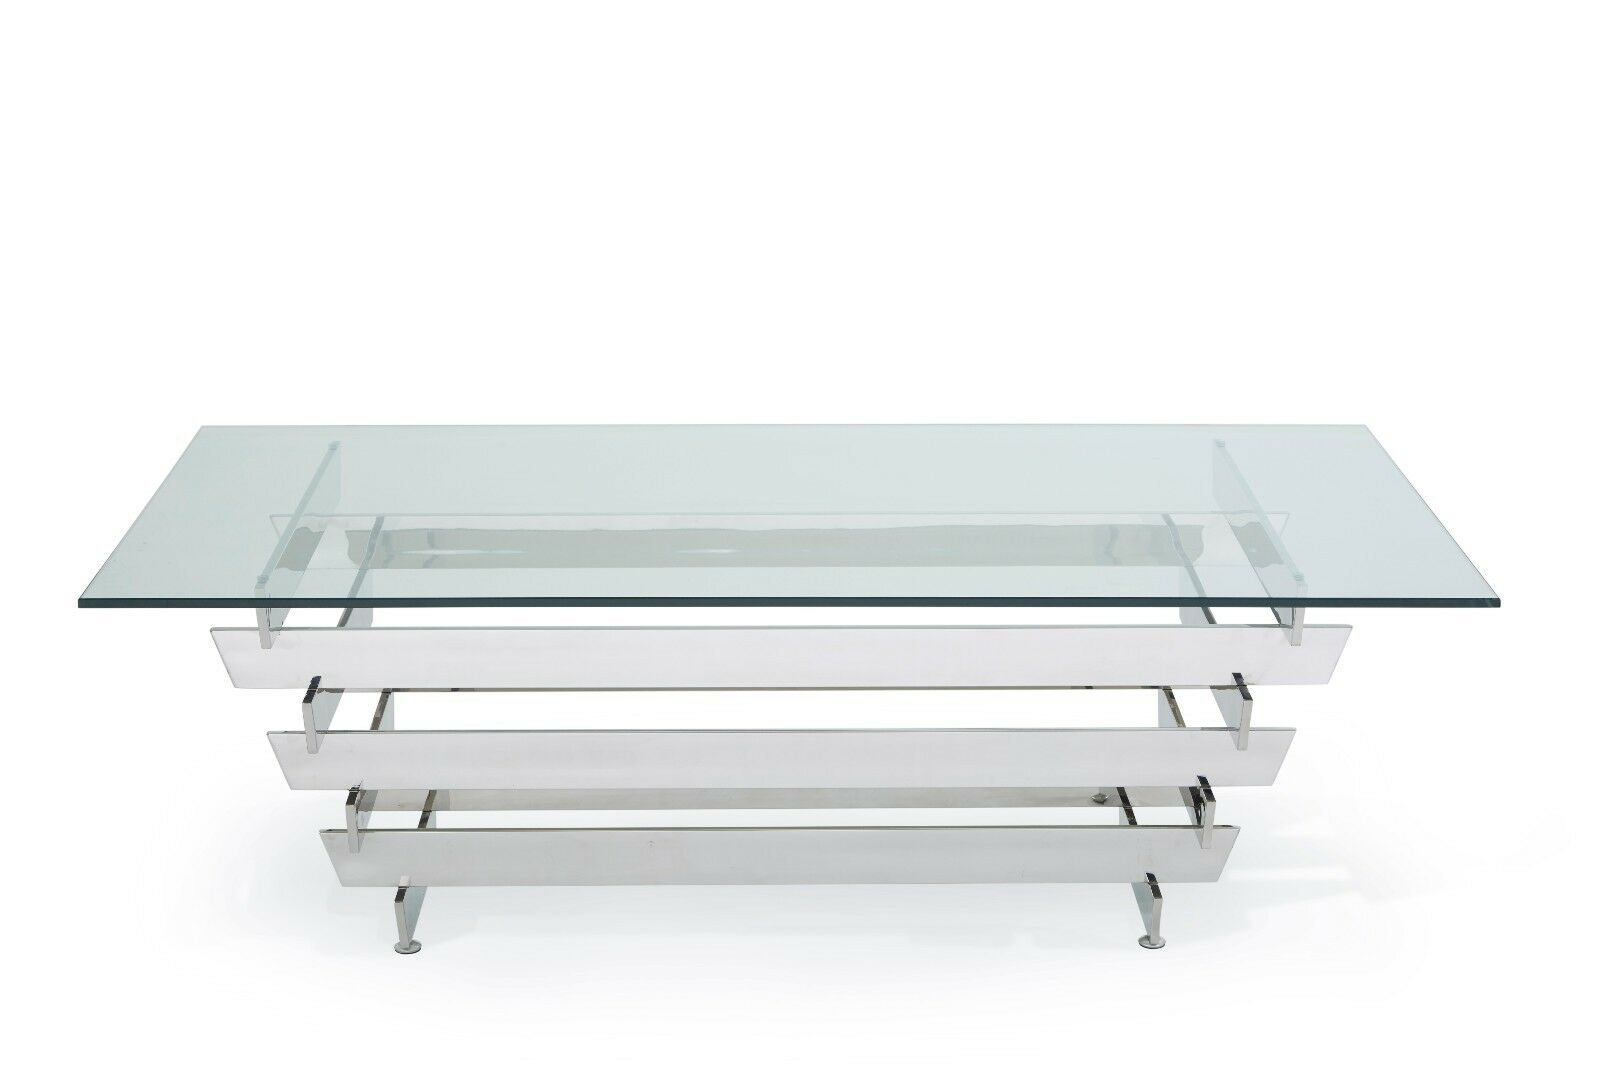 Kyoto modern coffee table rectangle design thick glass stainless kyoto modern coffee table rectangle design thick glass stainless steel frame geotapseo Images